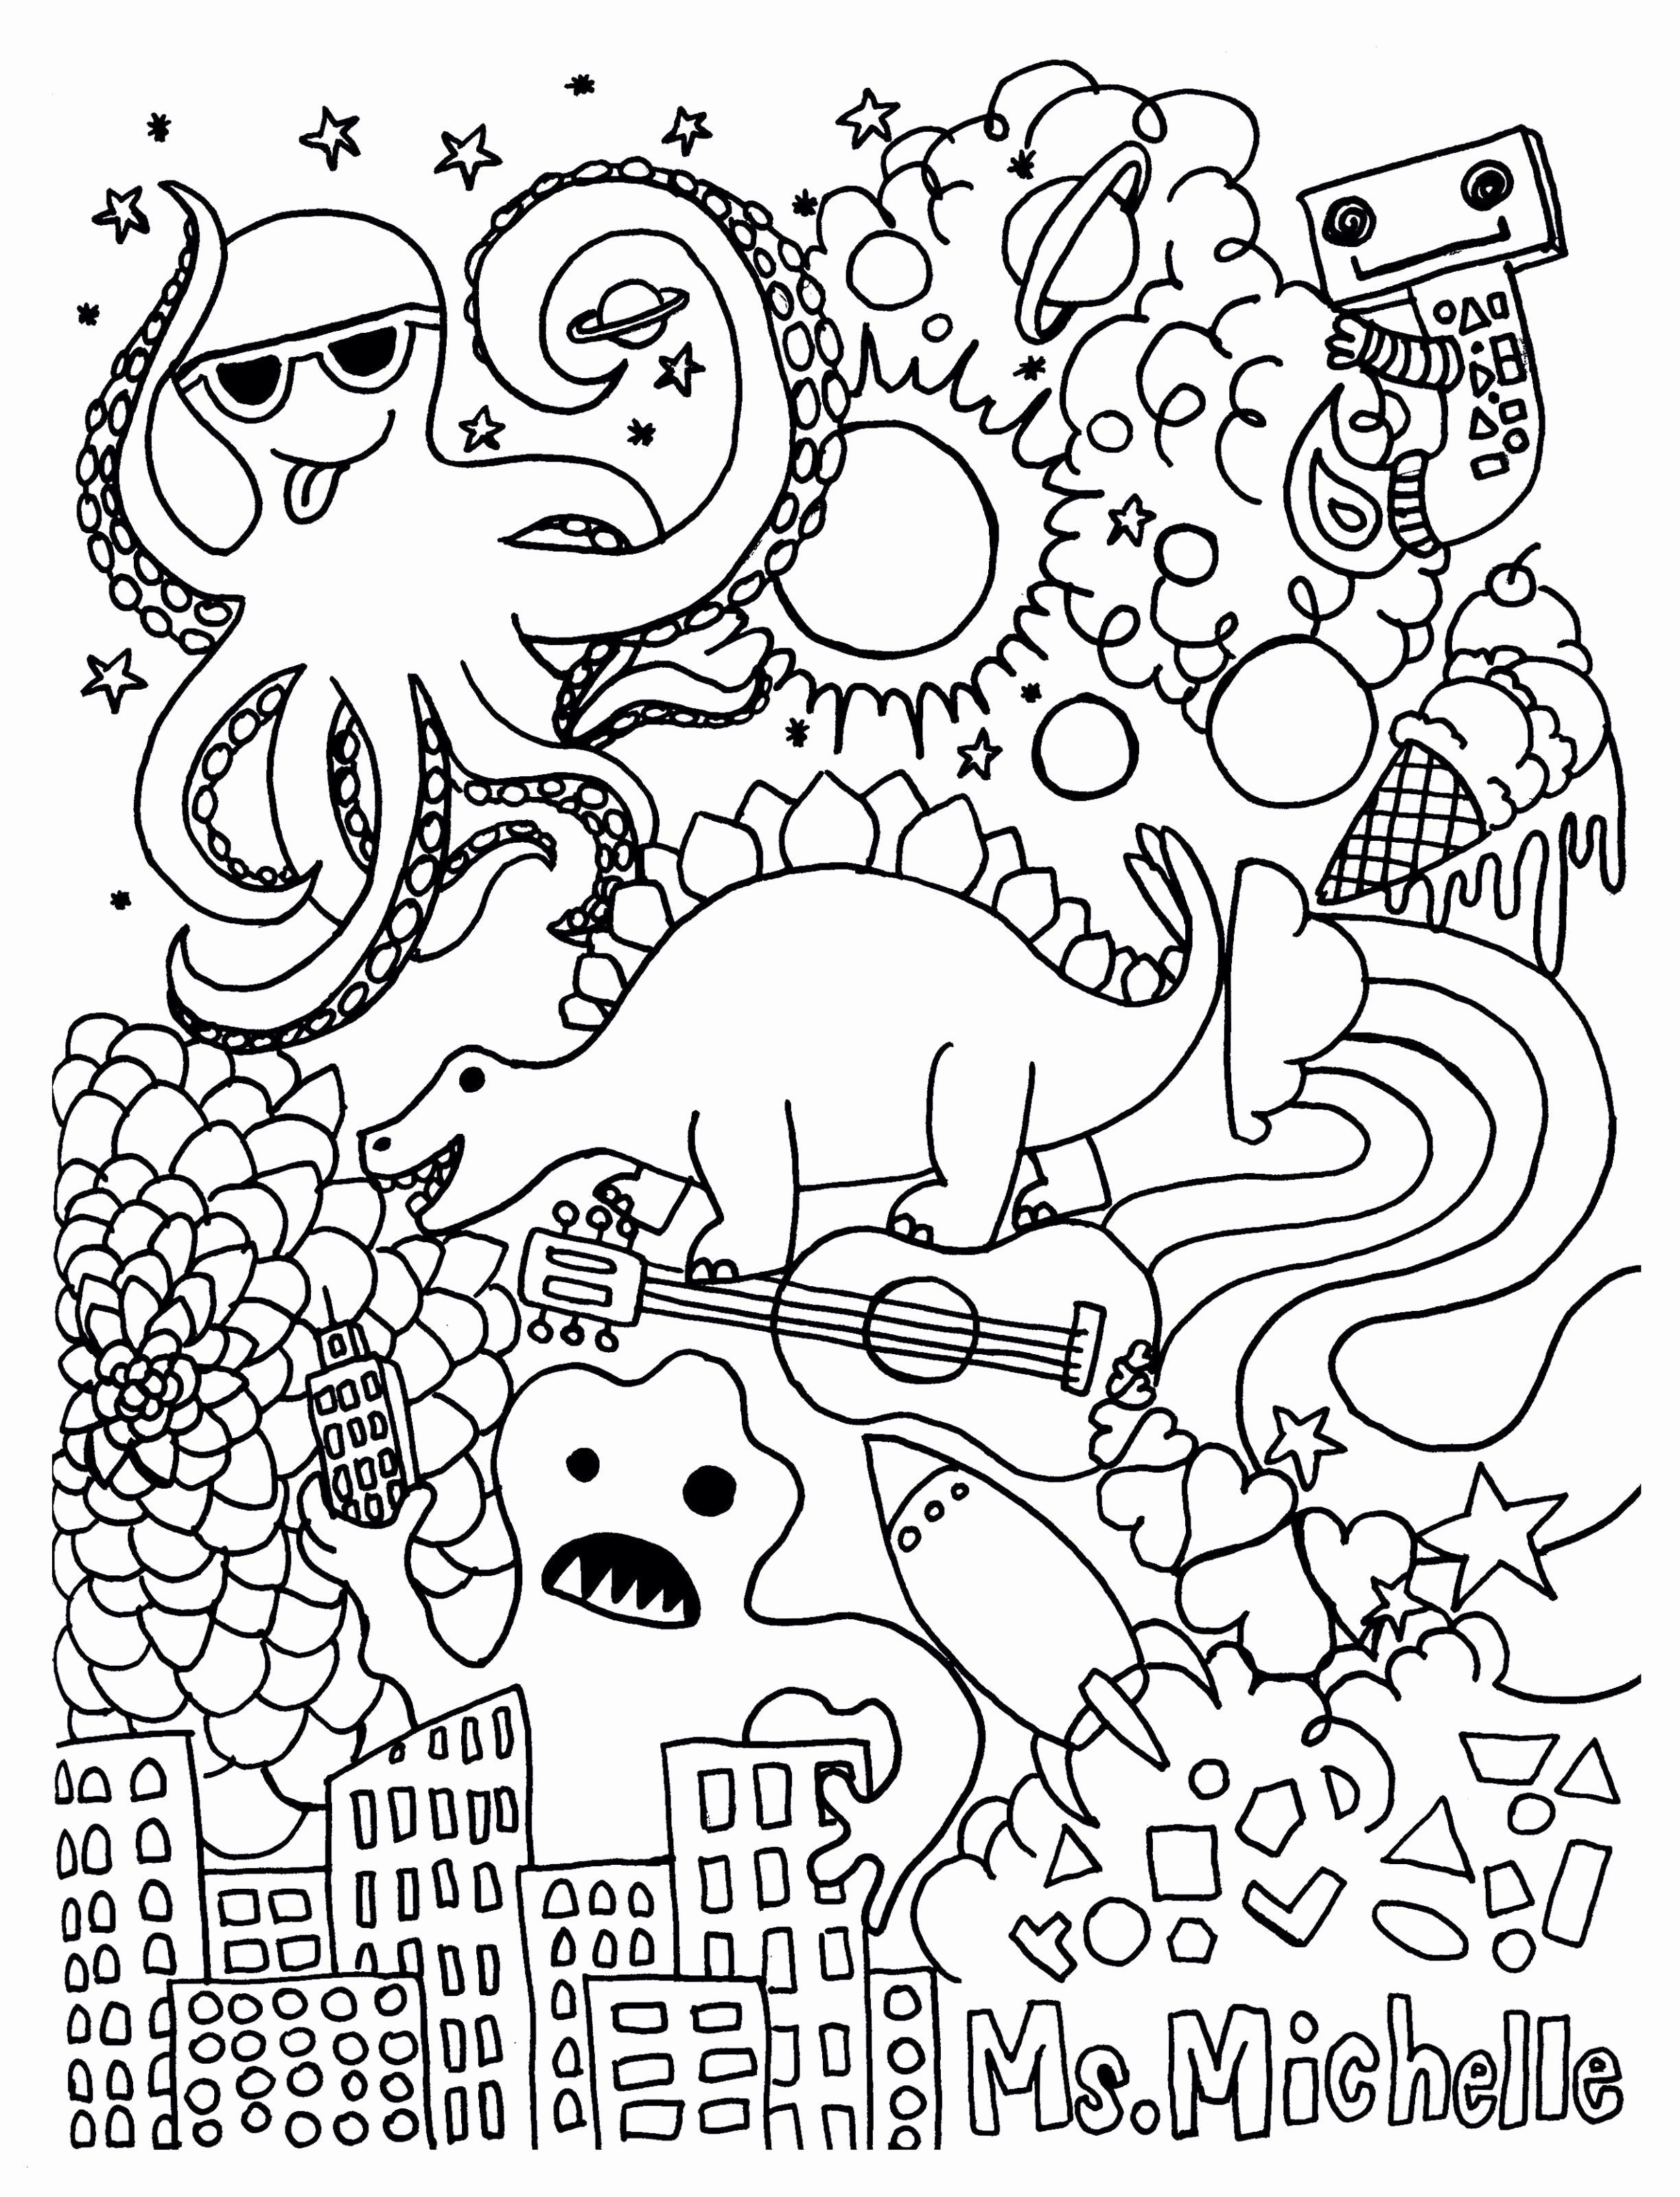 Coloring House For Kids Beautiful House Coloring Pages To Print In 2020 Coloring Pages Inspirational Fall Coloring Pages Easy Coloring Pages